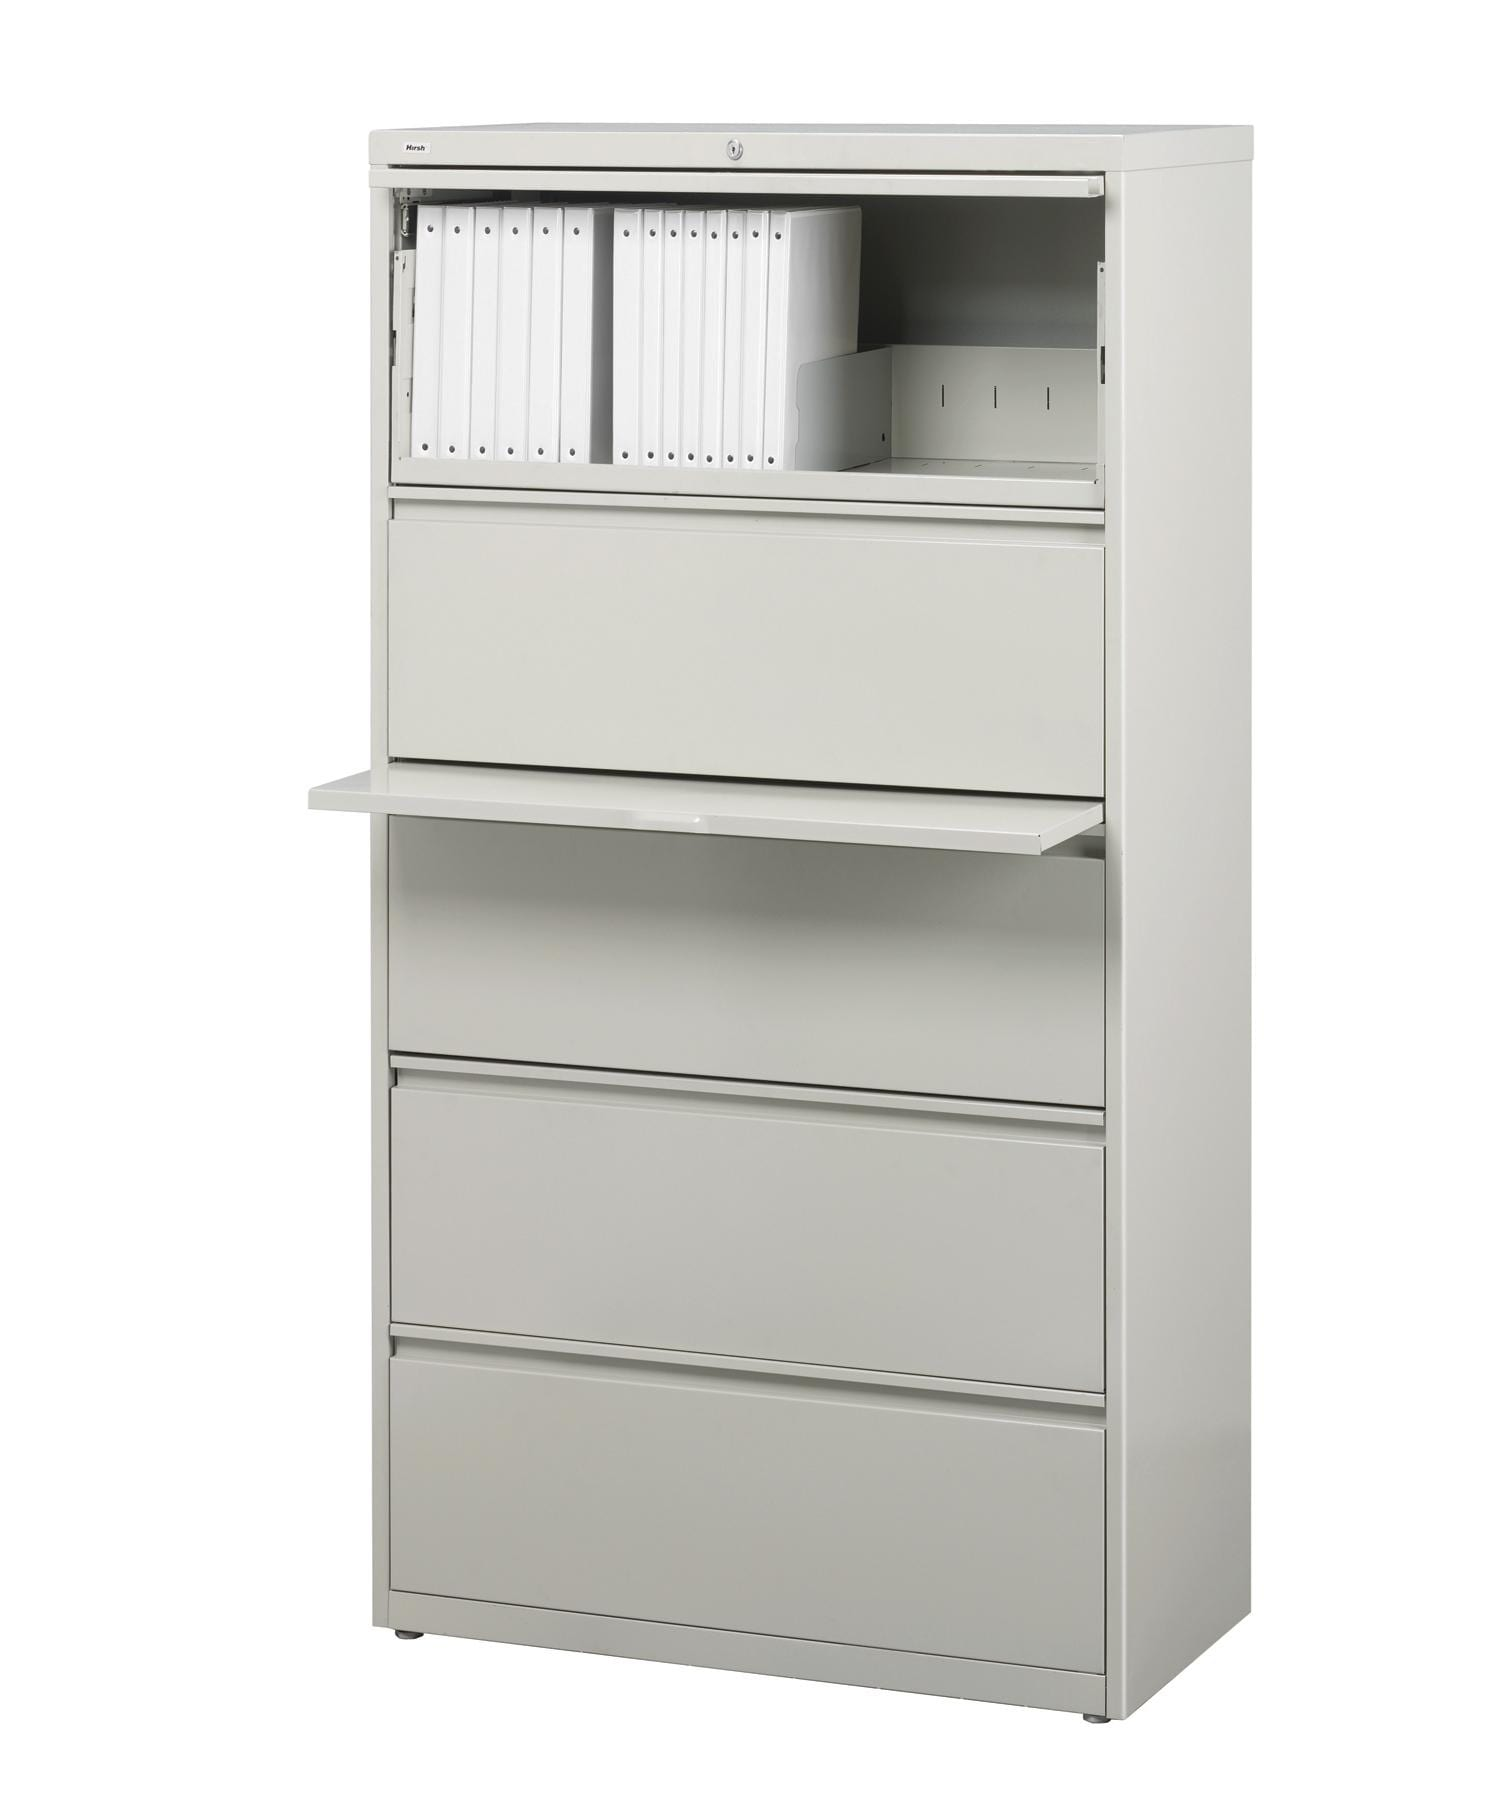 ... HL10000 Series 30-inch Wide 4-drawer Commercial Lateral File Cabinet